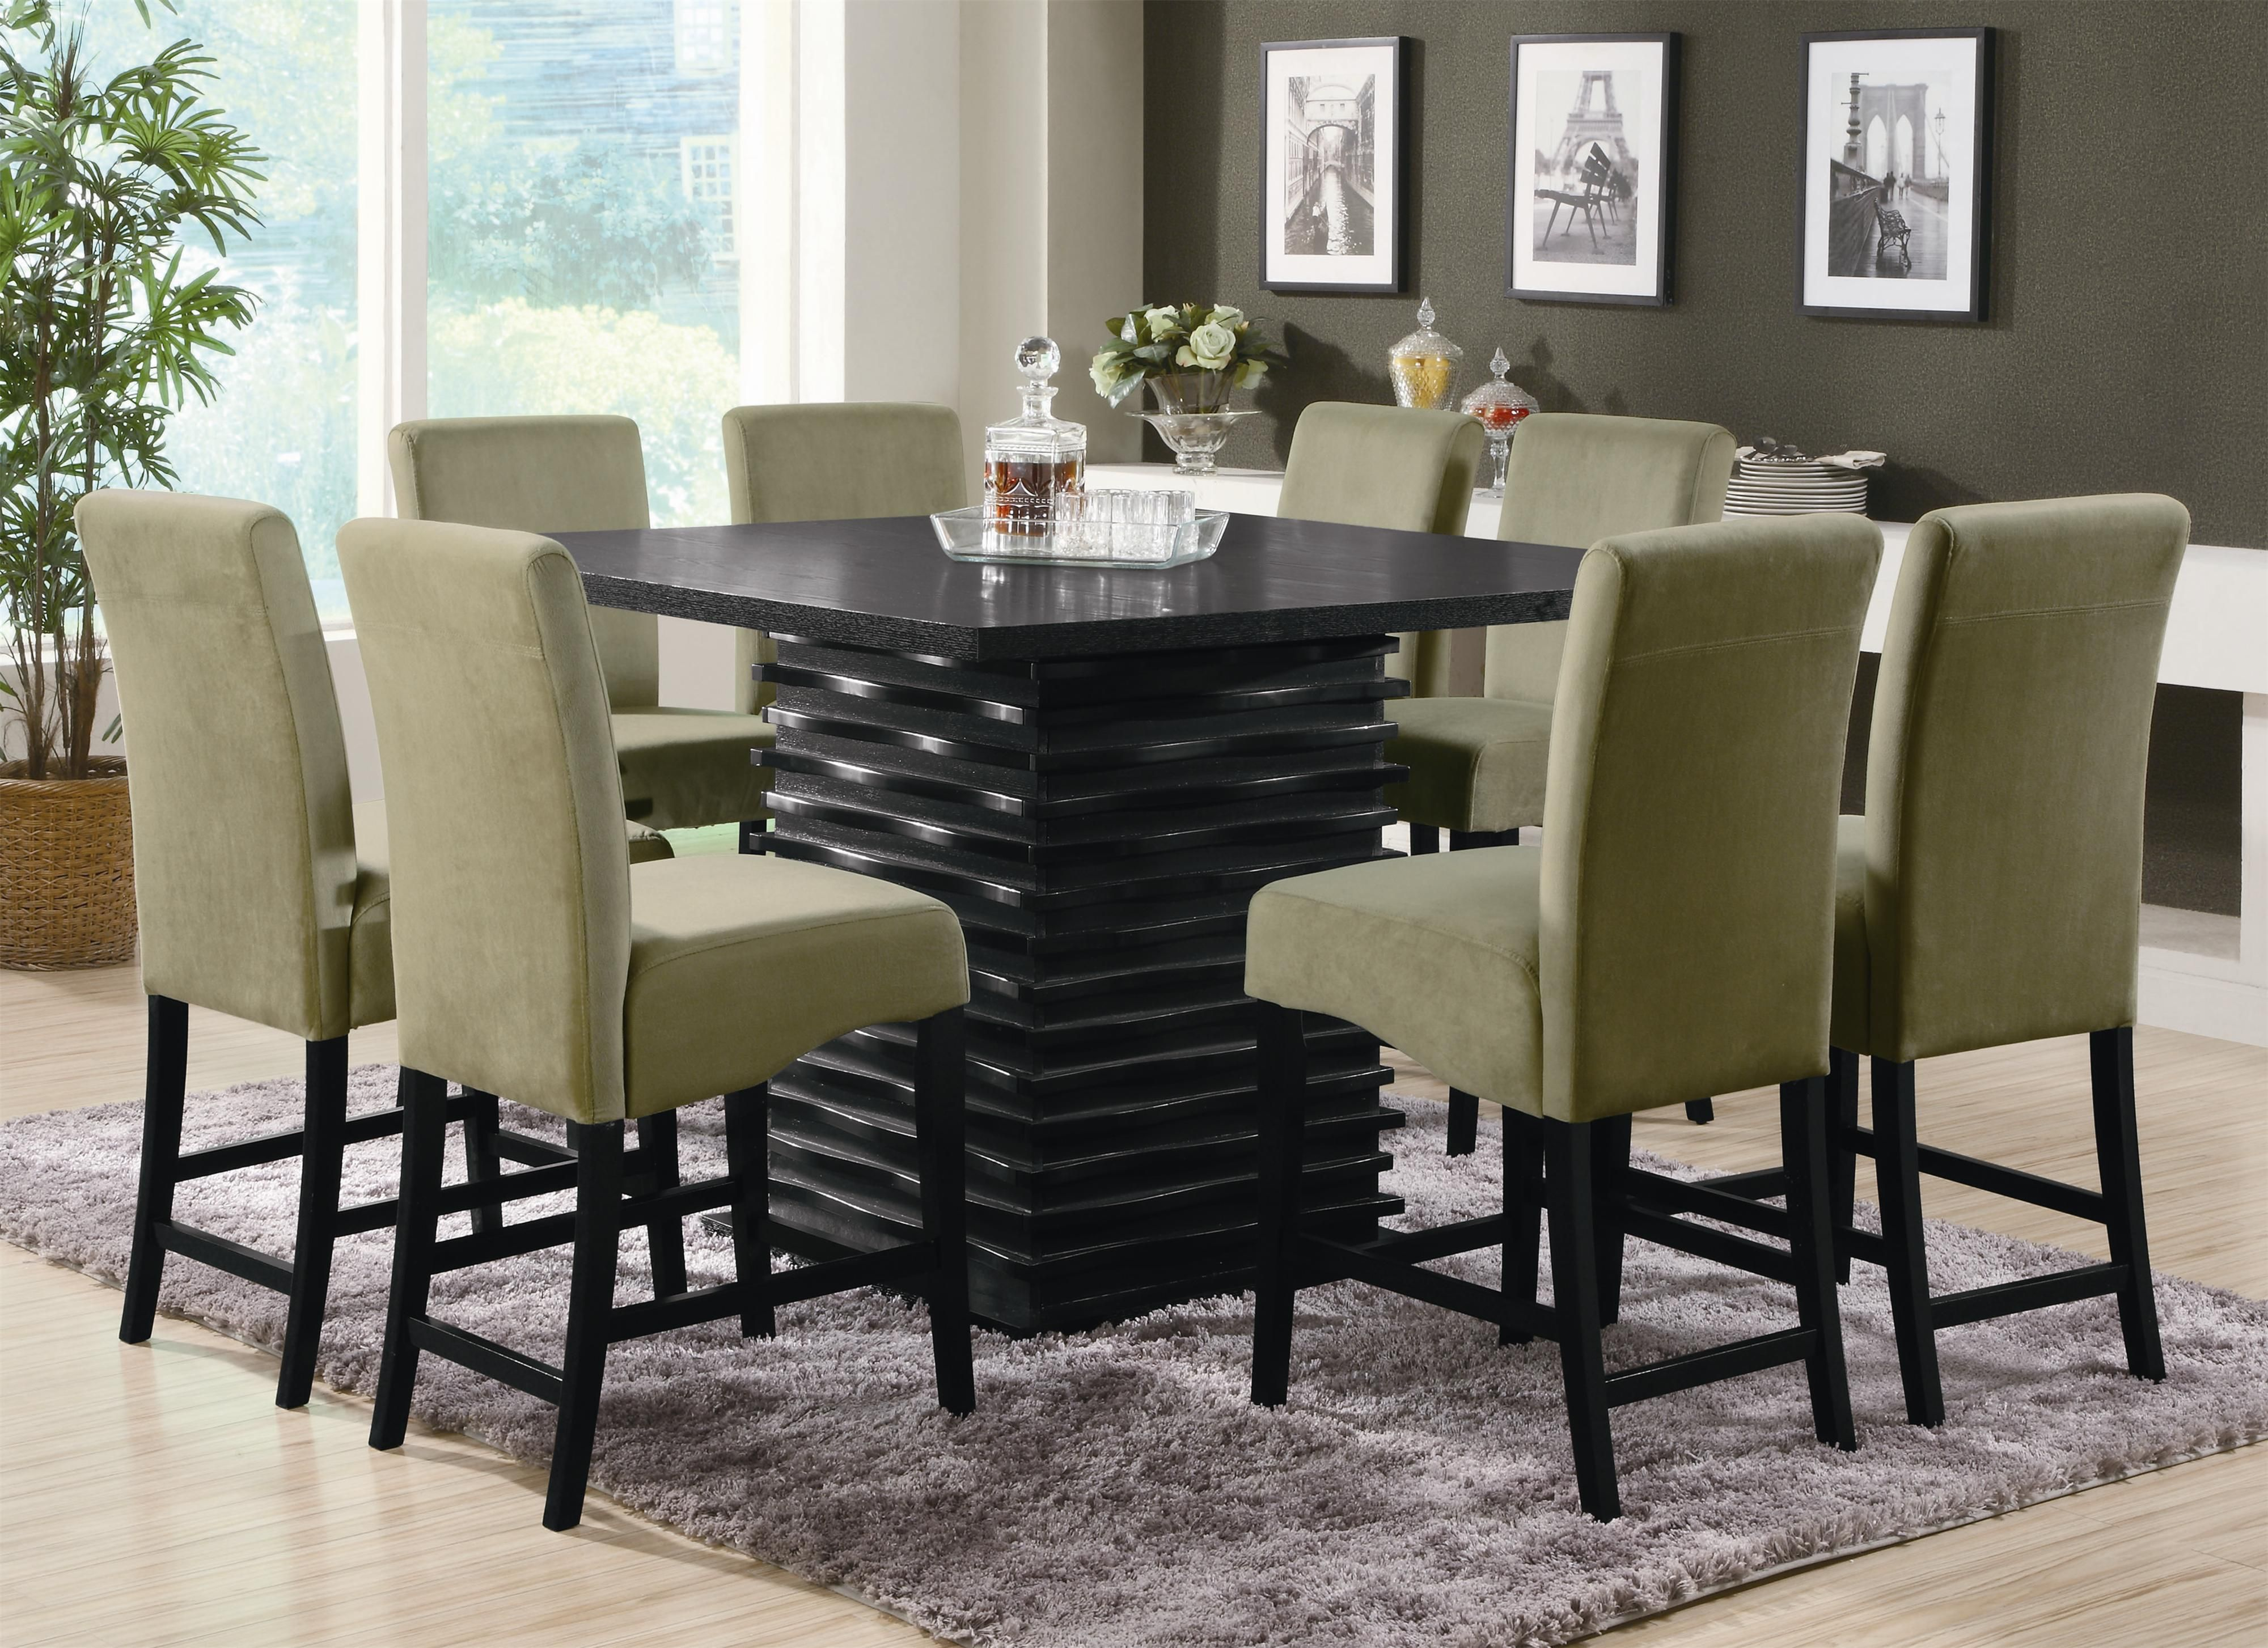 44++ Black square counter height dining table Trend